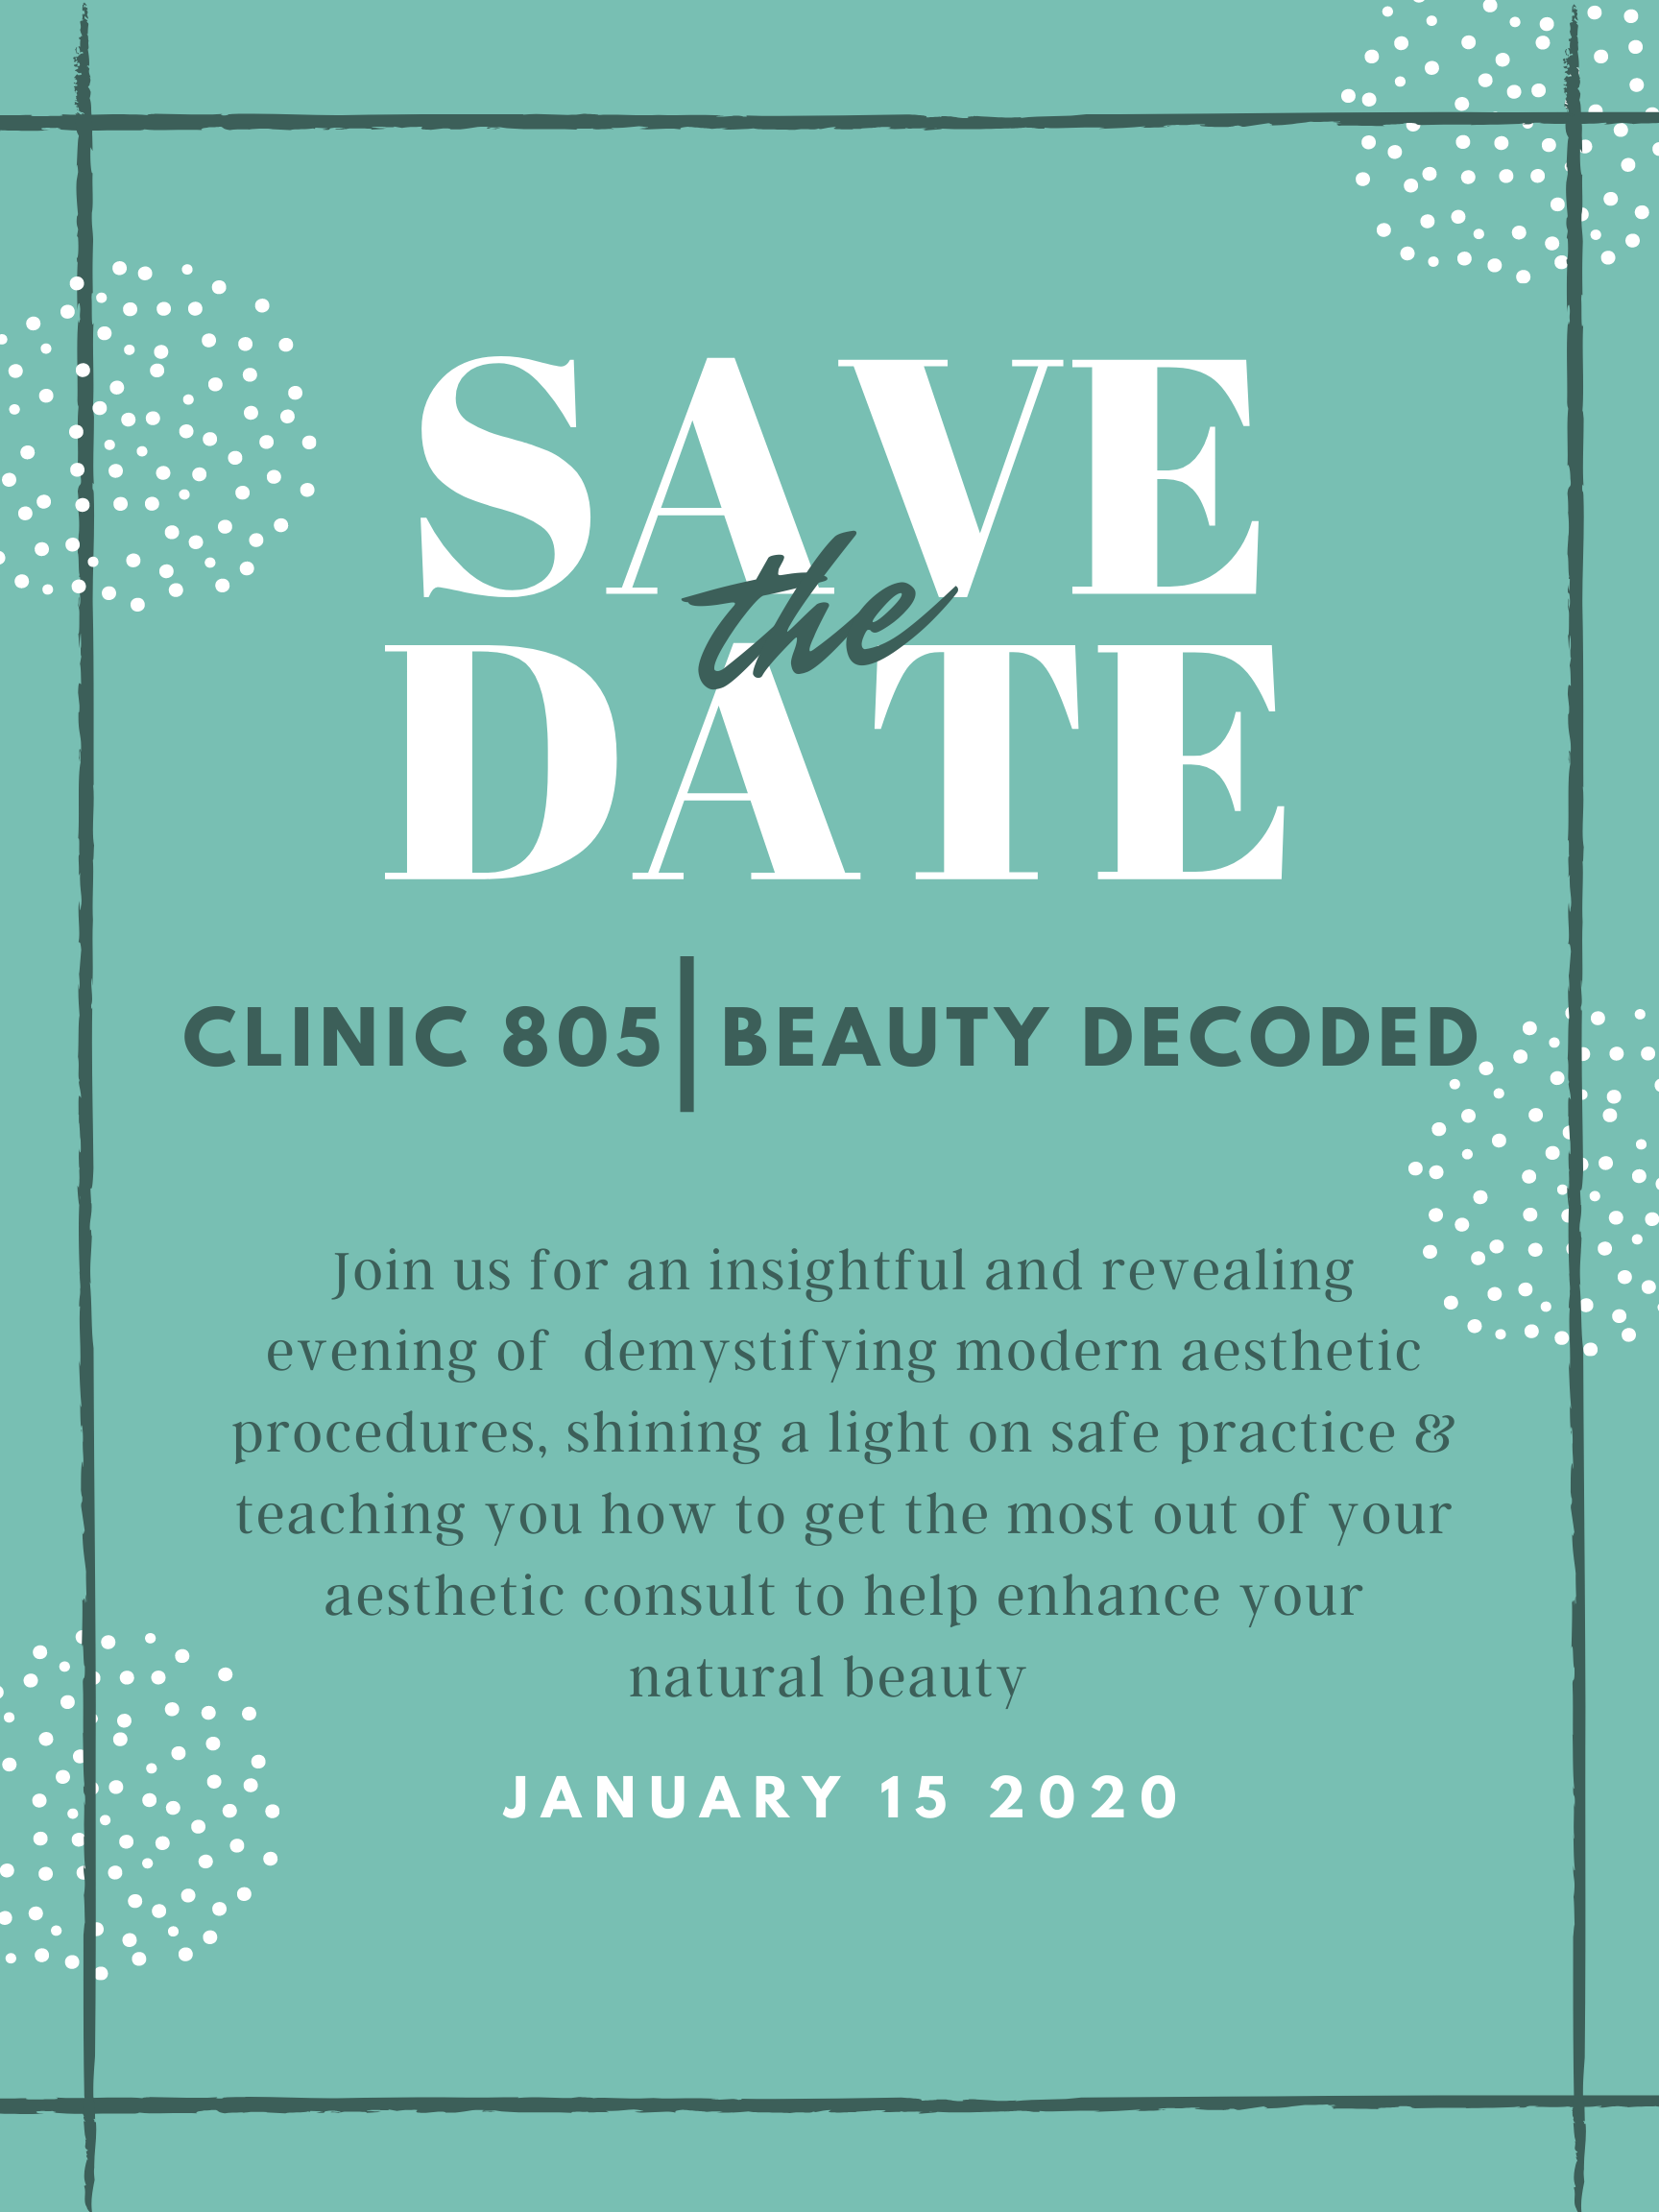 copy of clinic 805 beauty decoded